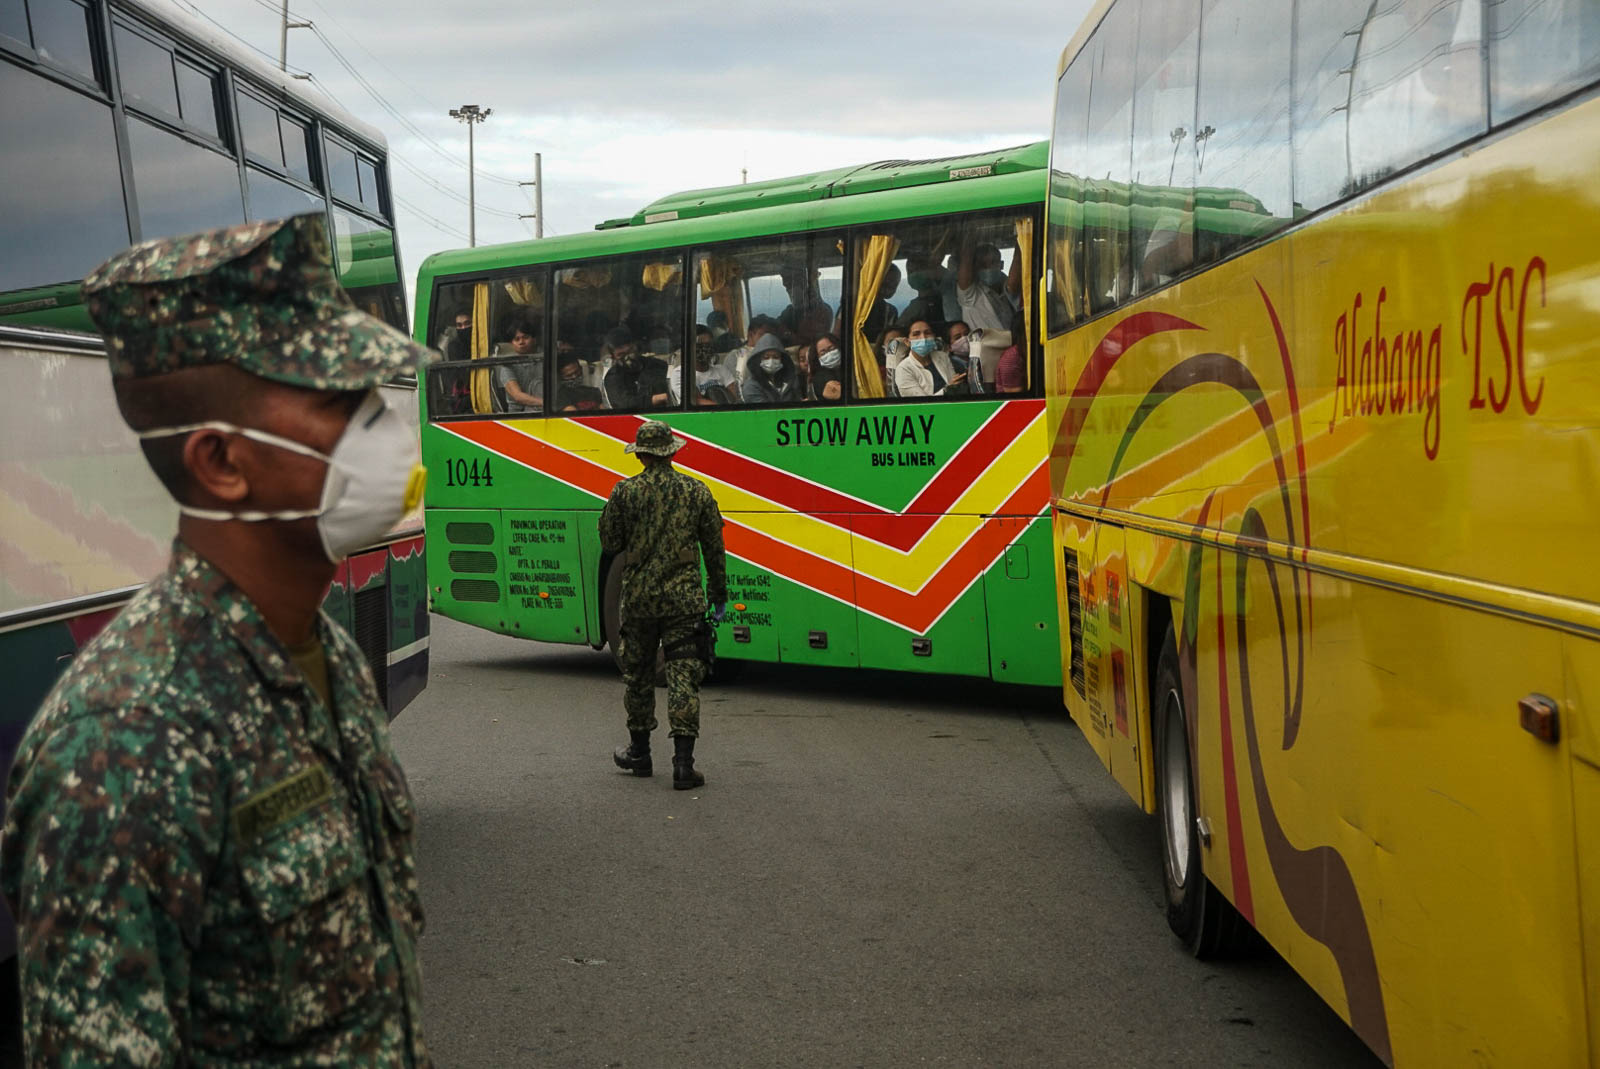 CHECKPOINT. Policemen conduct quarantine checks on commuters in public transportation vehicles at the Cavitex exit in Parau00f1aque City on March 16, 2020. Photo by Dante Diosina Jr/Rappler